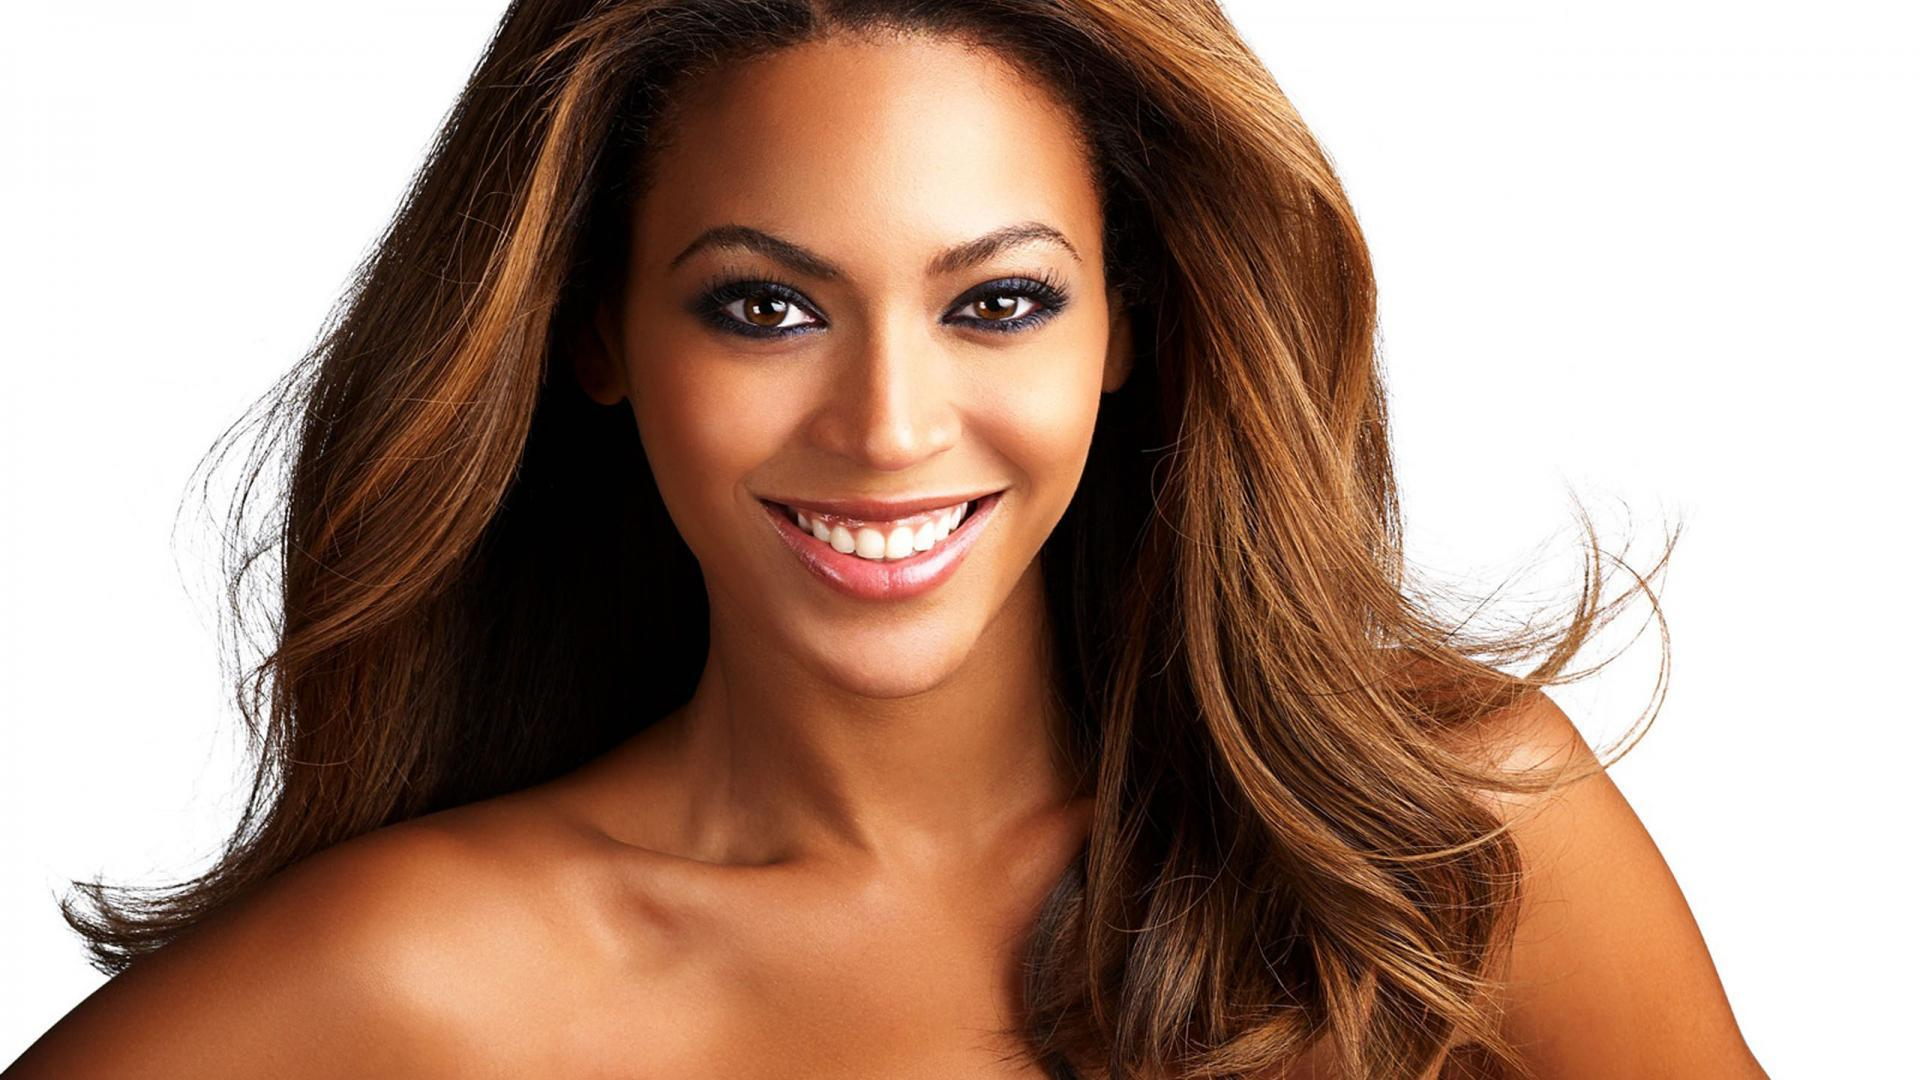 Beyoncé Knowles is recognized as a soulpop vocalist trendsetting music video performer multiple Grammy Award winner and film star Learn more at Biographycom